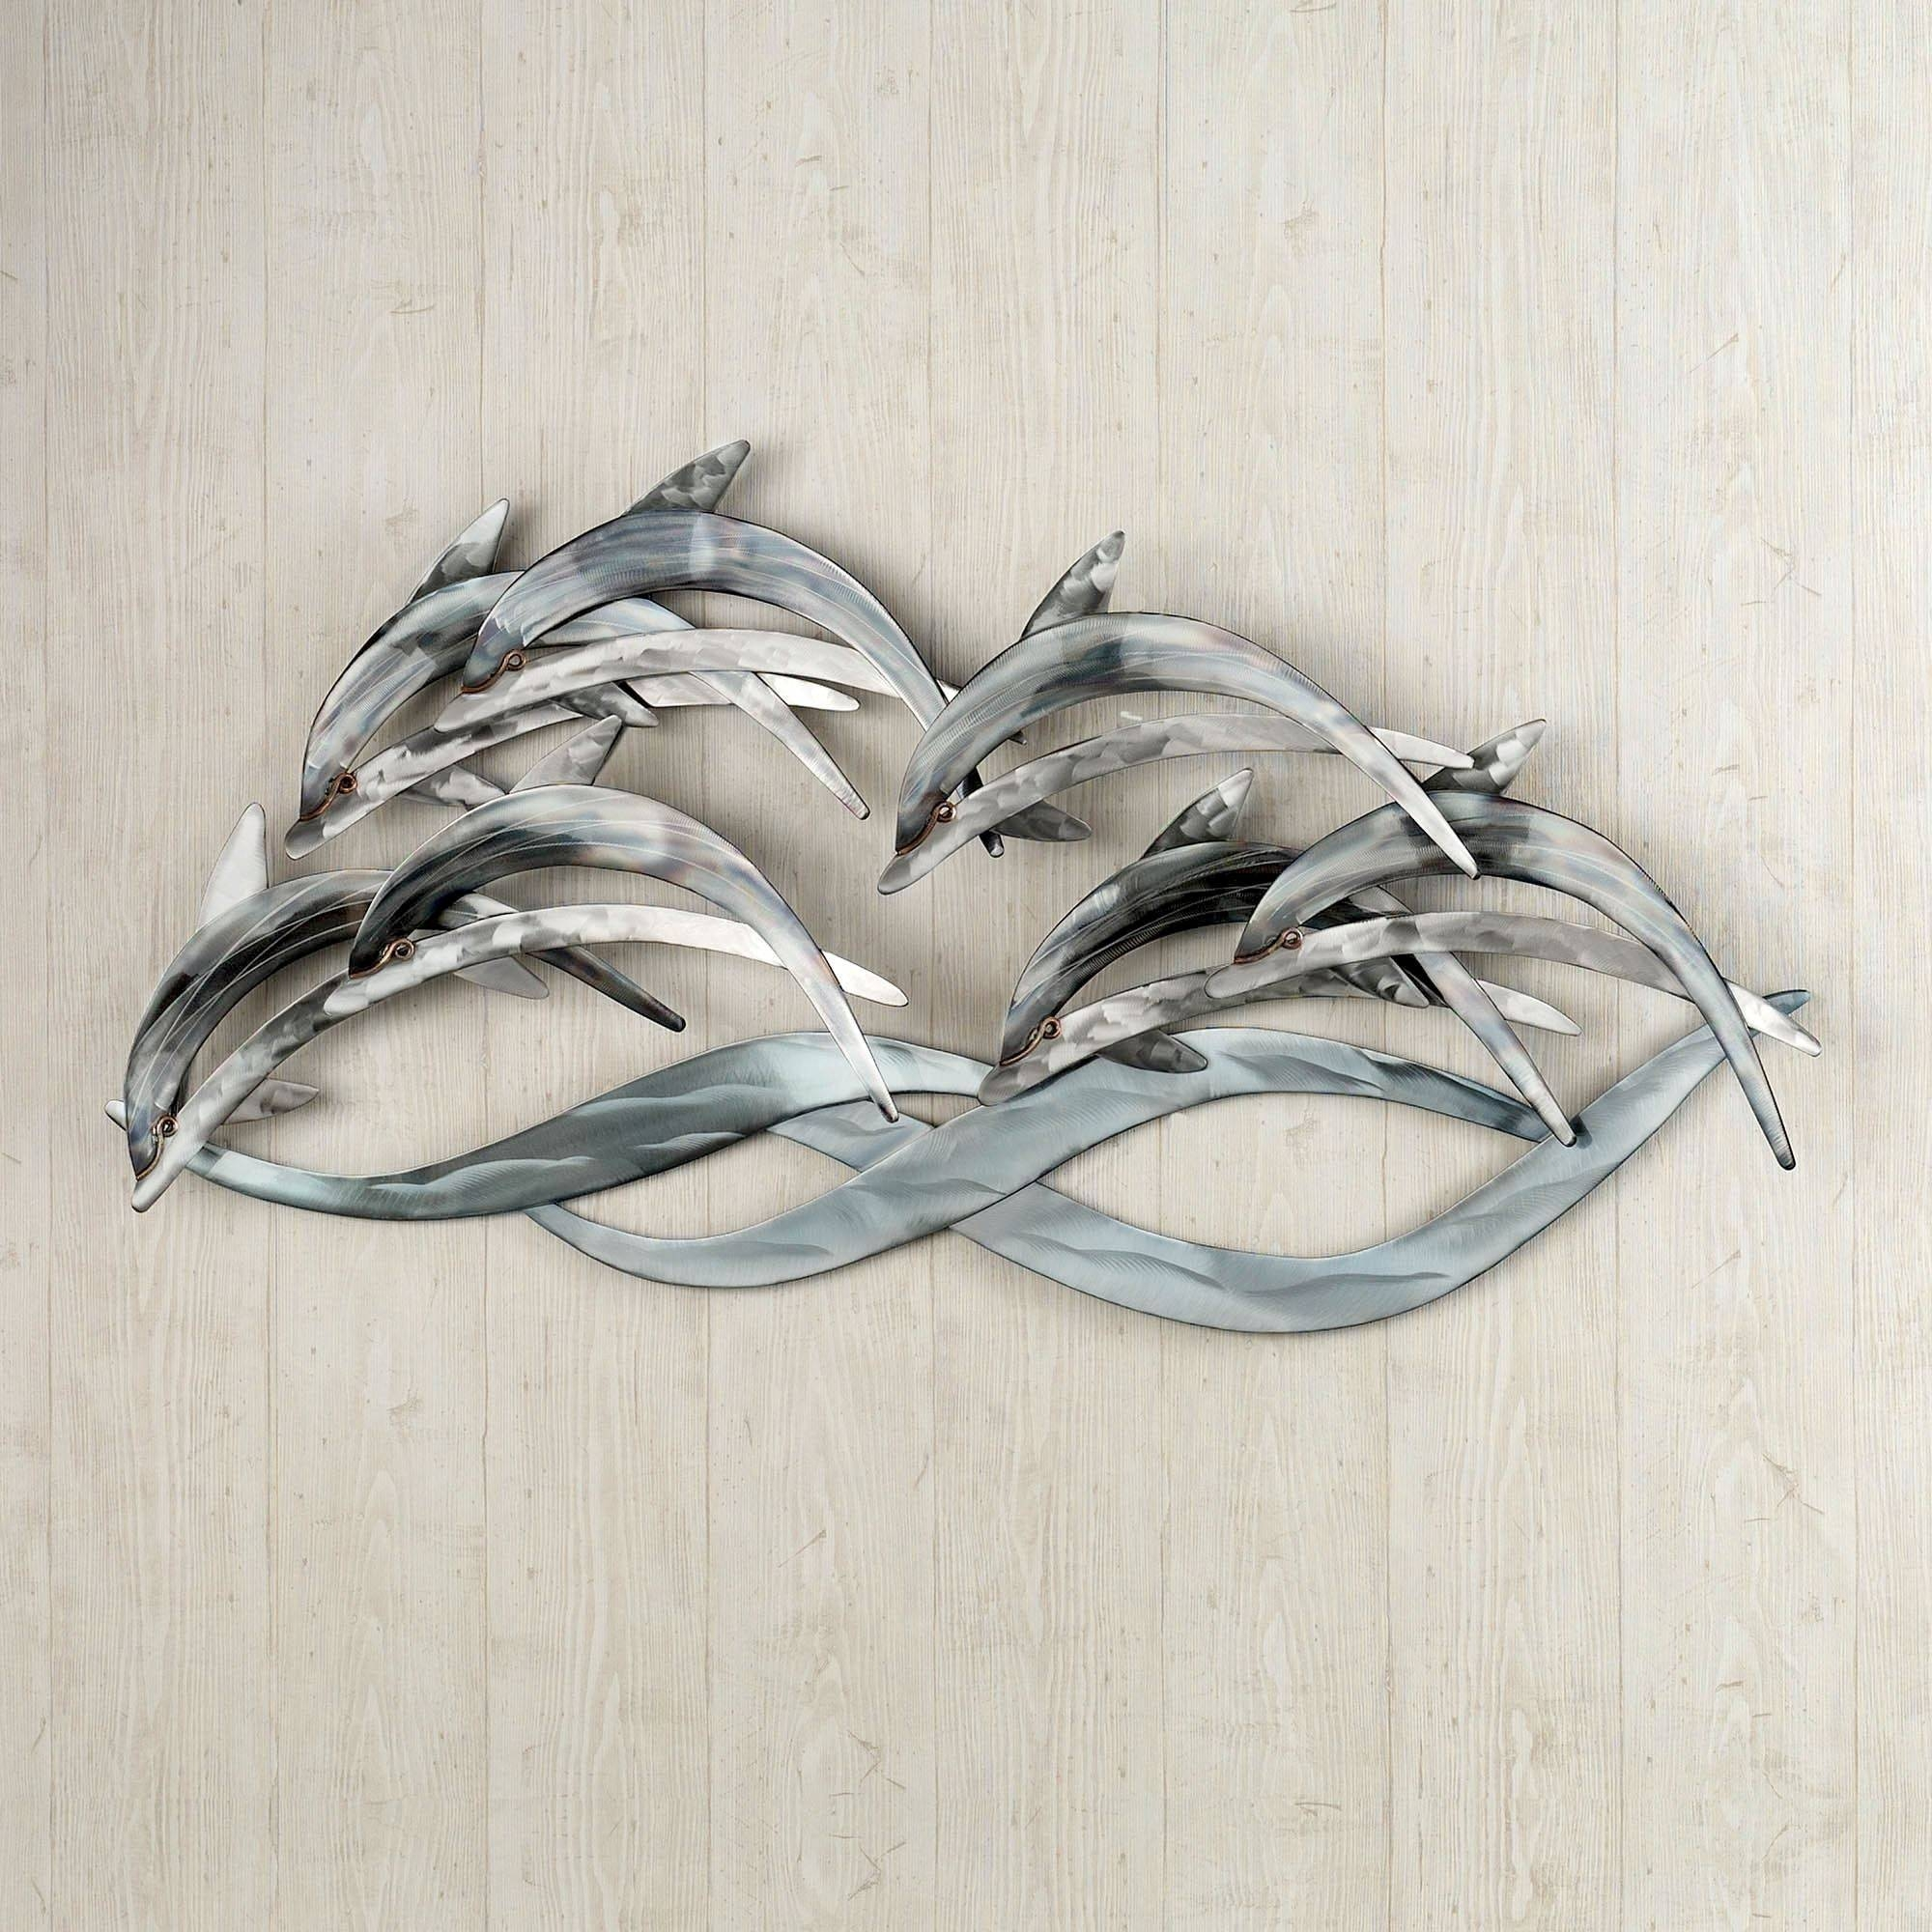 Wave Dancers Dolphin Stainless Steel Wall Sculpture Regarding Current Metal Wall Art Dancers (View 11 of 20)